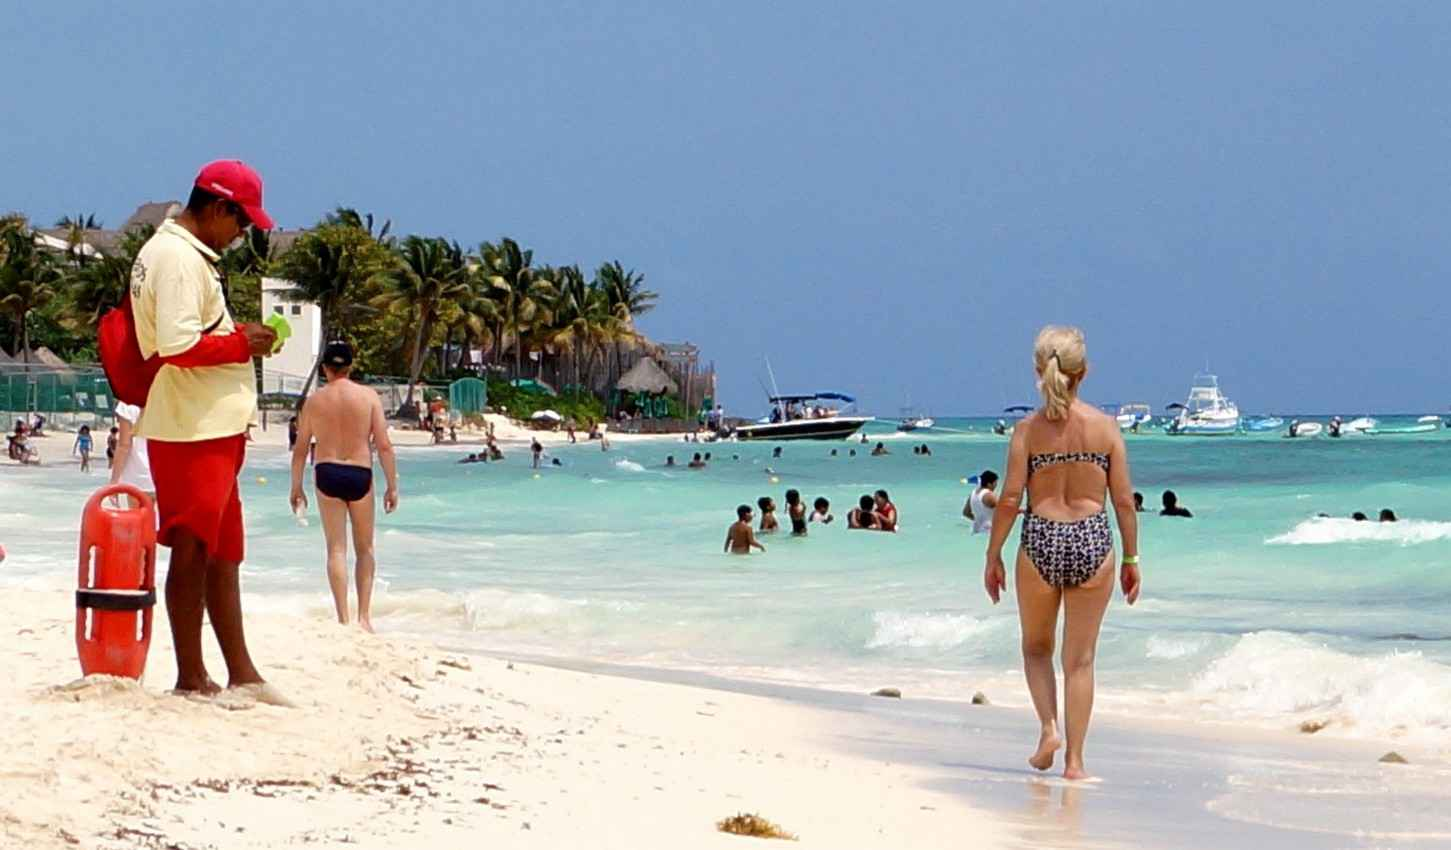 A Middle Aged Woman Walked Down The Beach Near Liuard In Playa Del Carmen